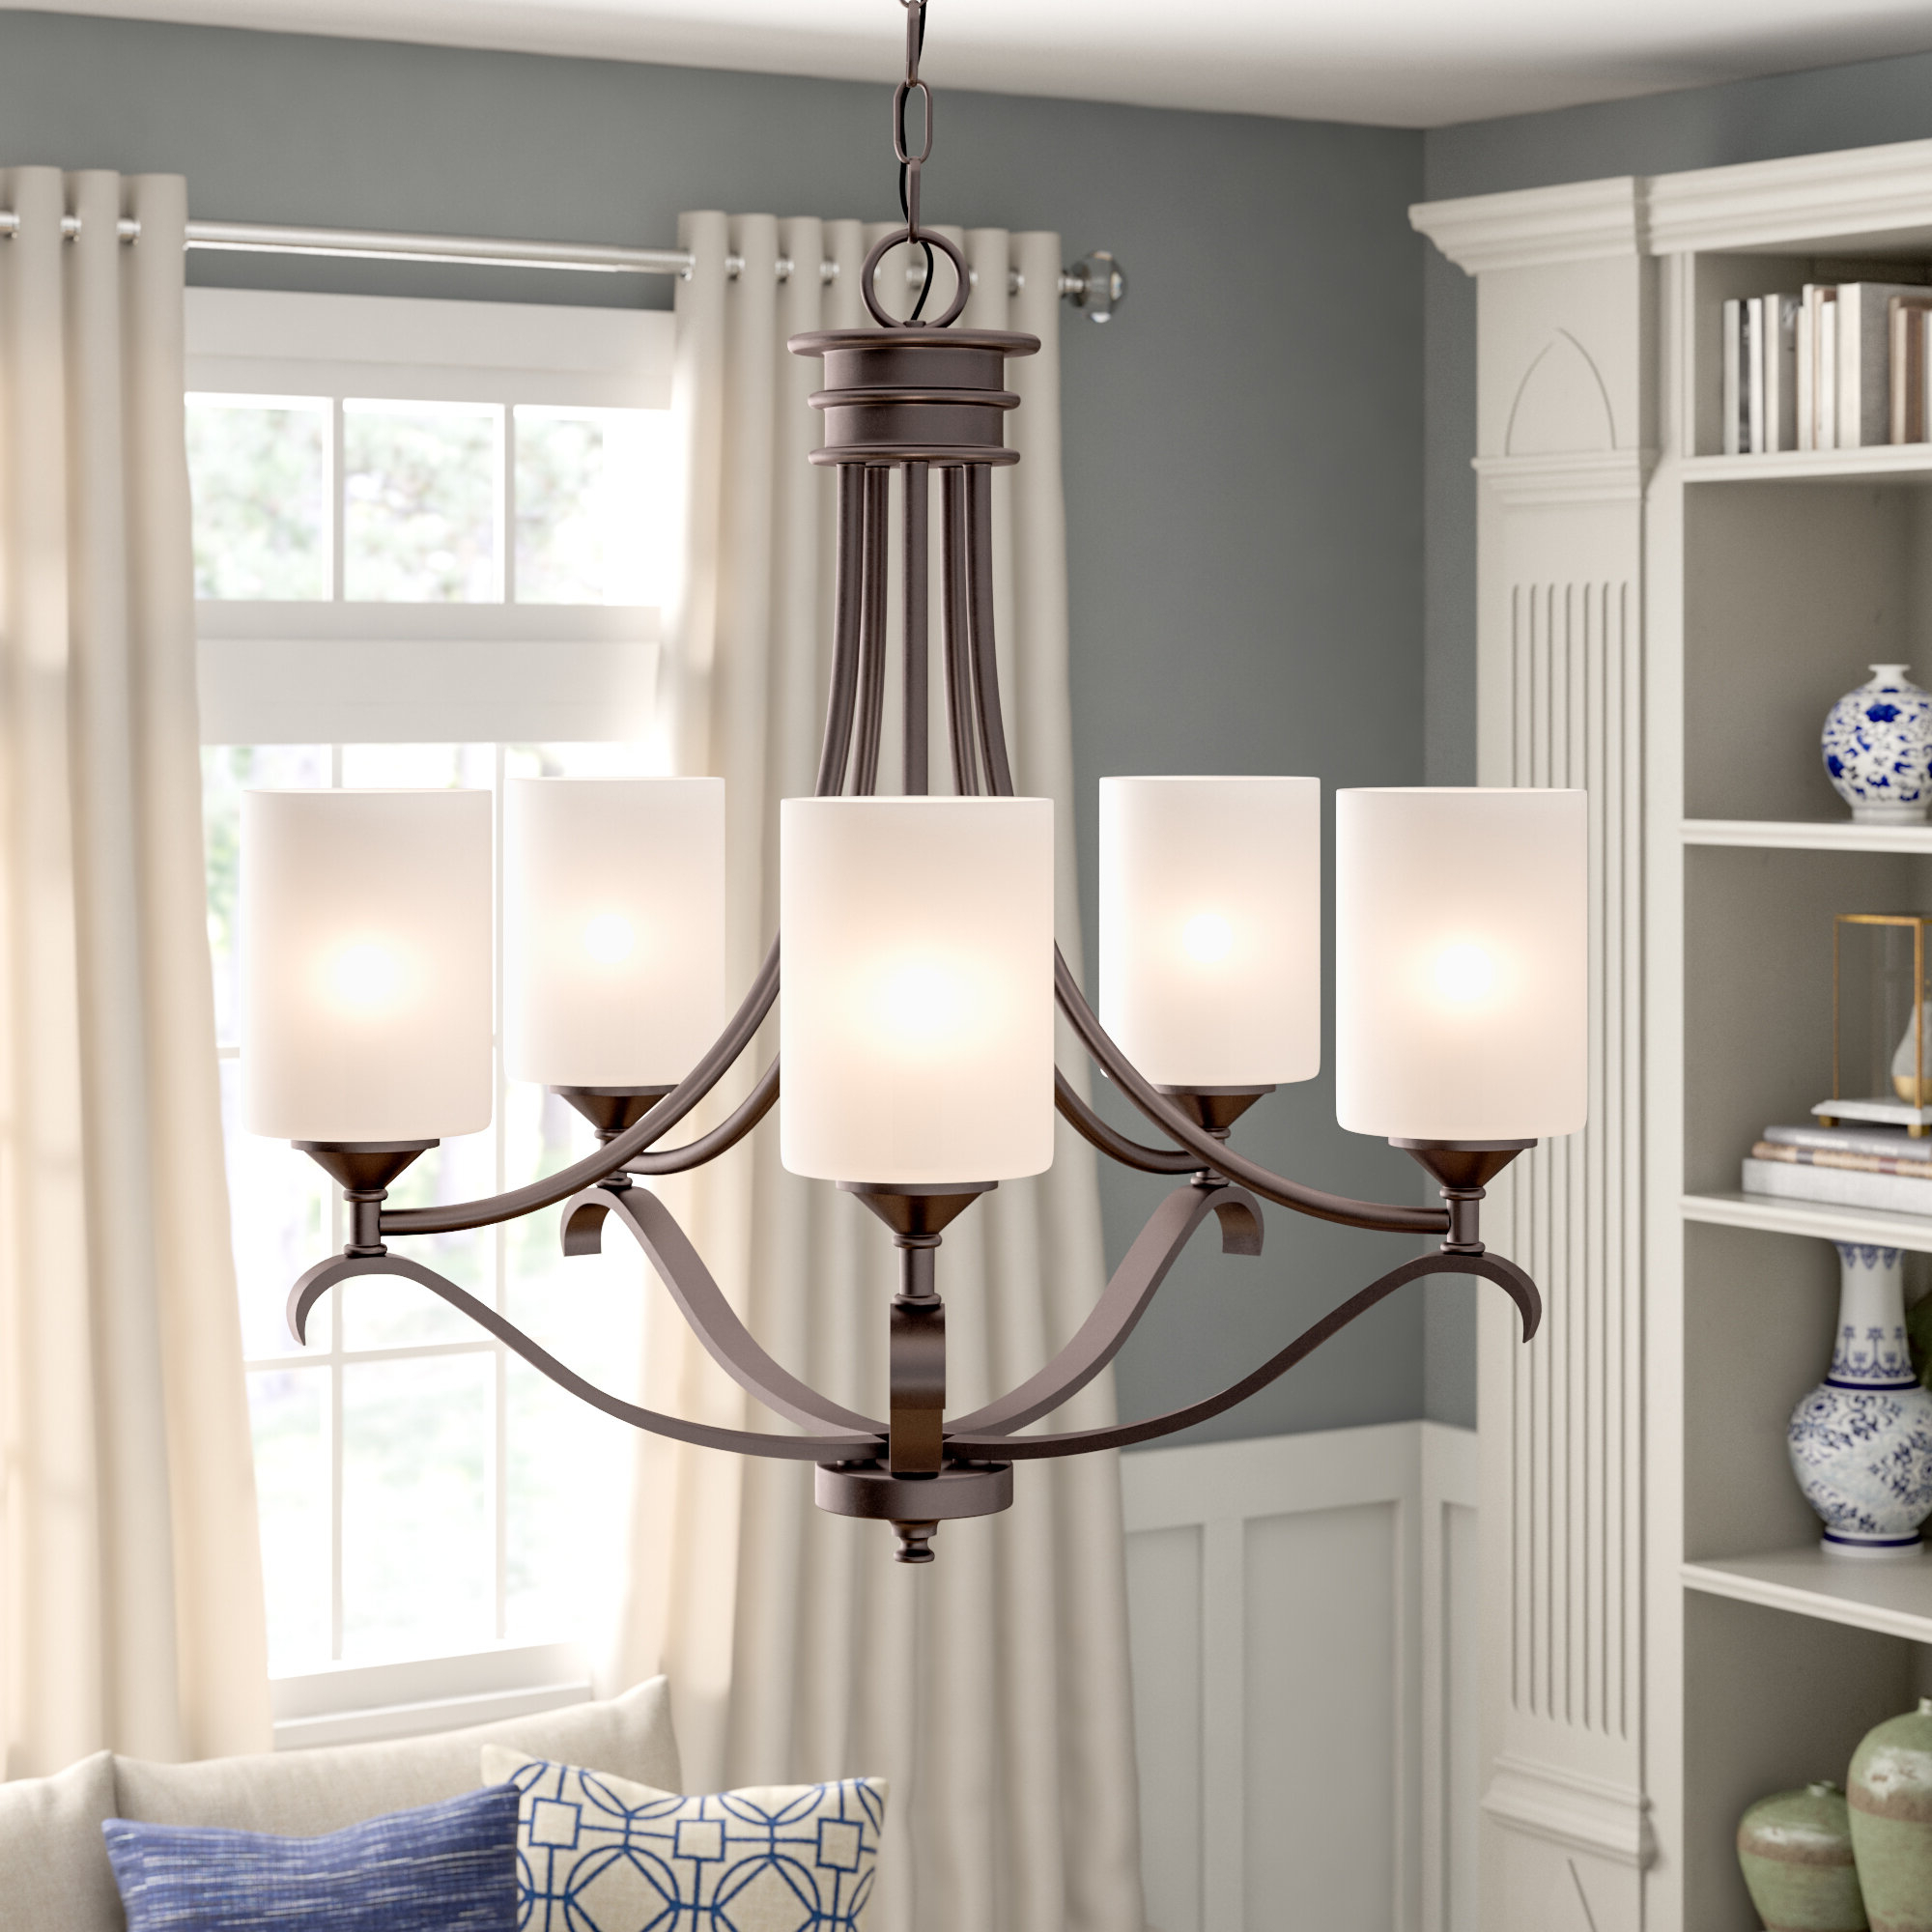 Newent 5 Light Shaded Chandeliers Throughout Most Up To Date Suki 5 Light Shaded Chandelier (View 15 of 25)